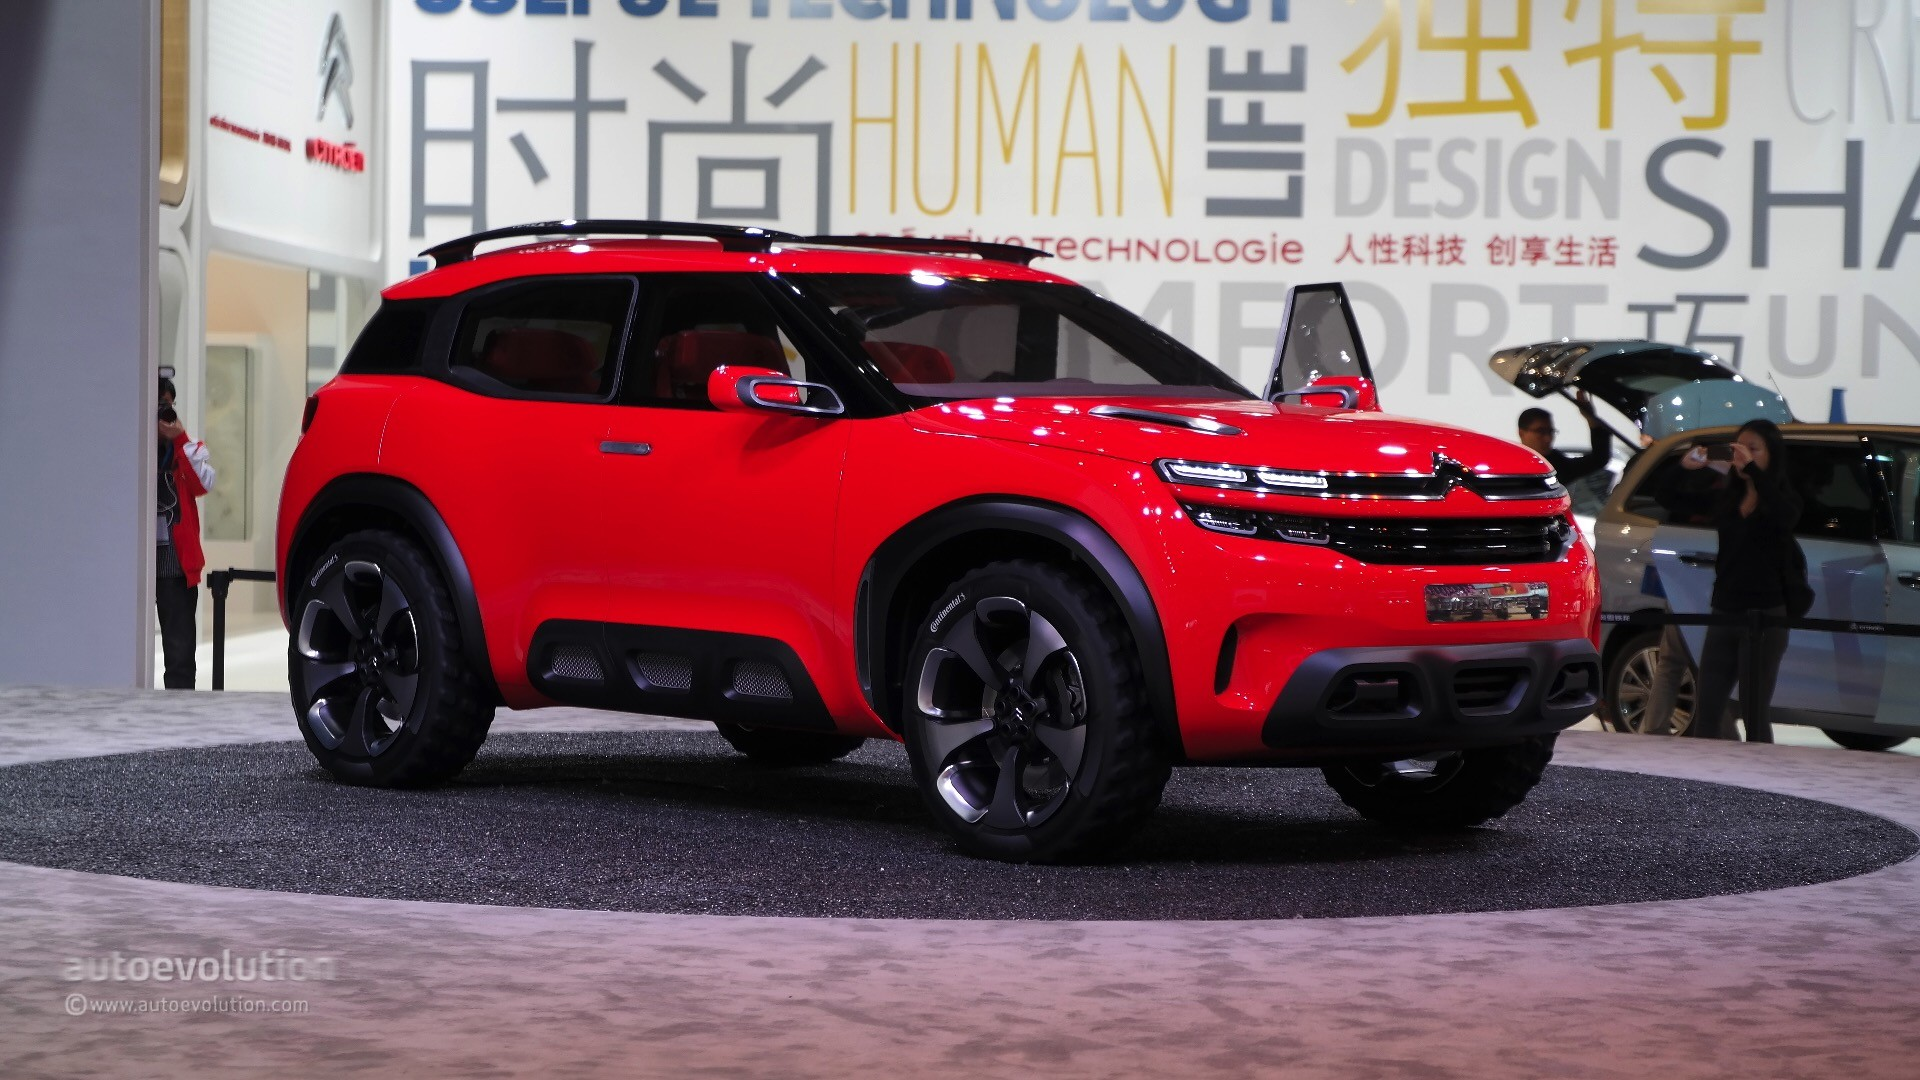 Citroen Aircross Concept Makes A First Appearance At The